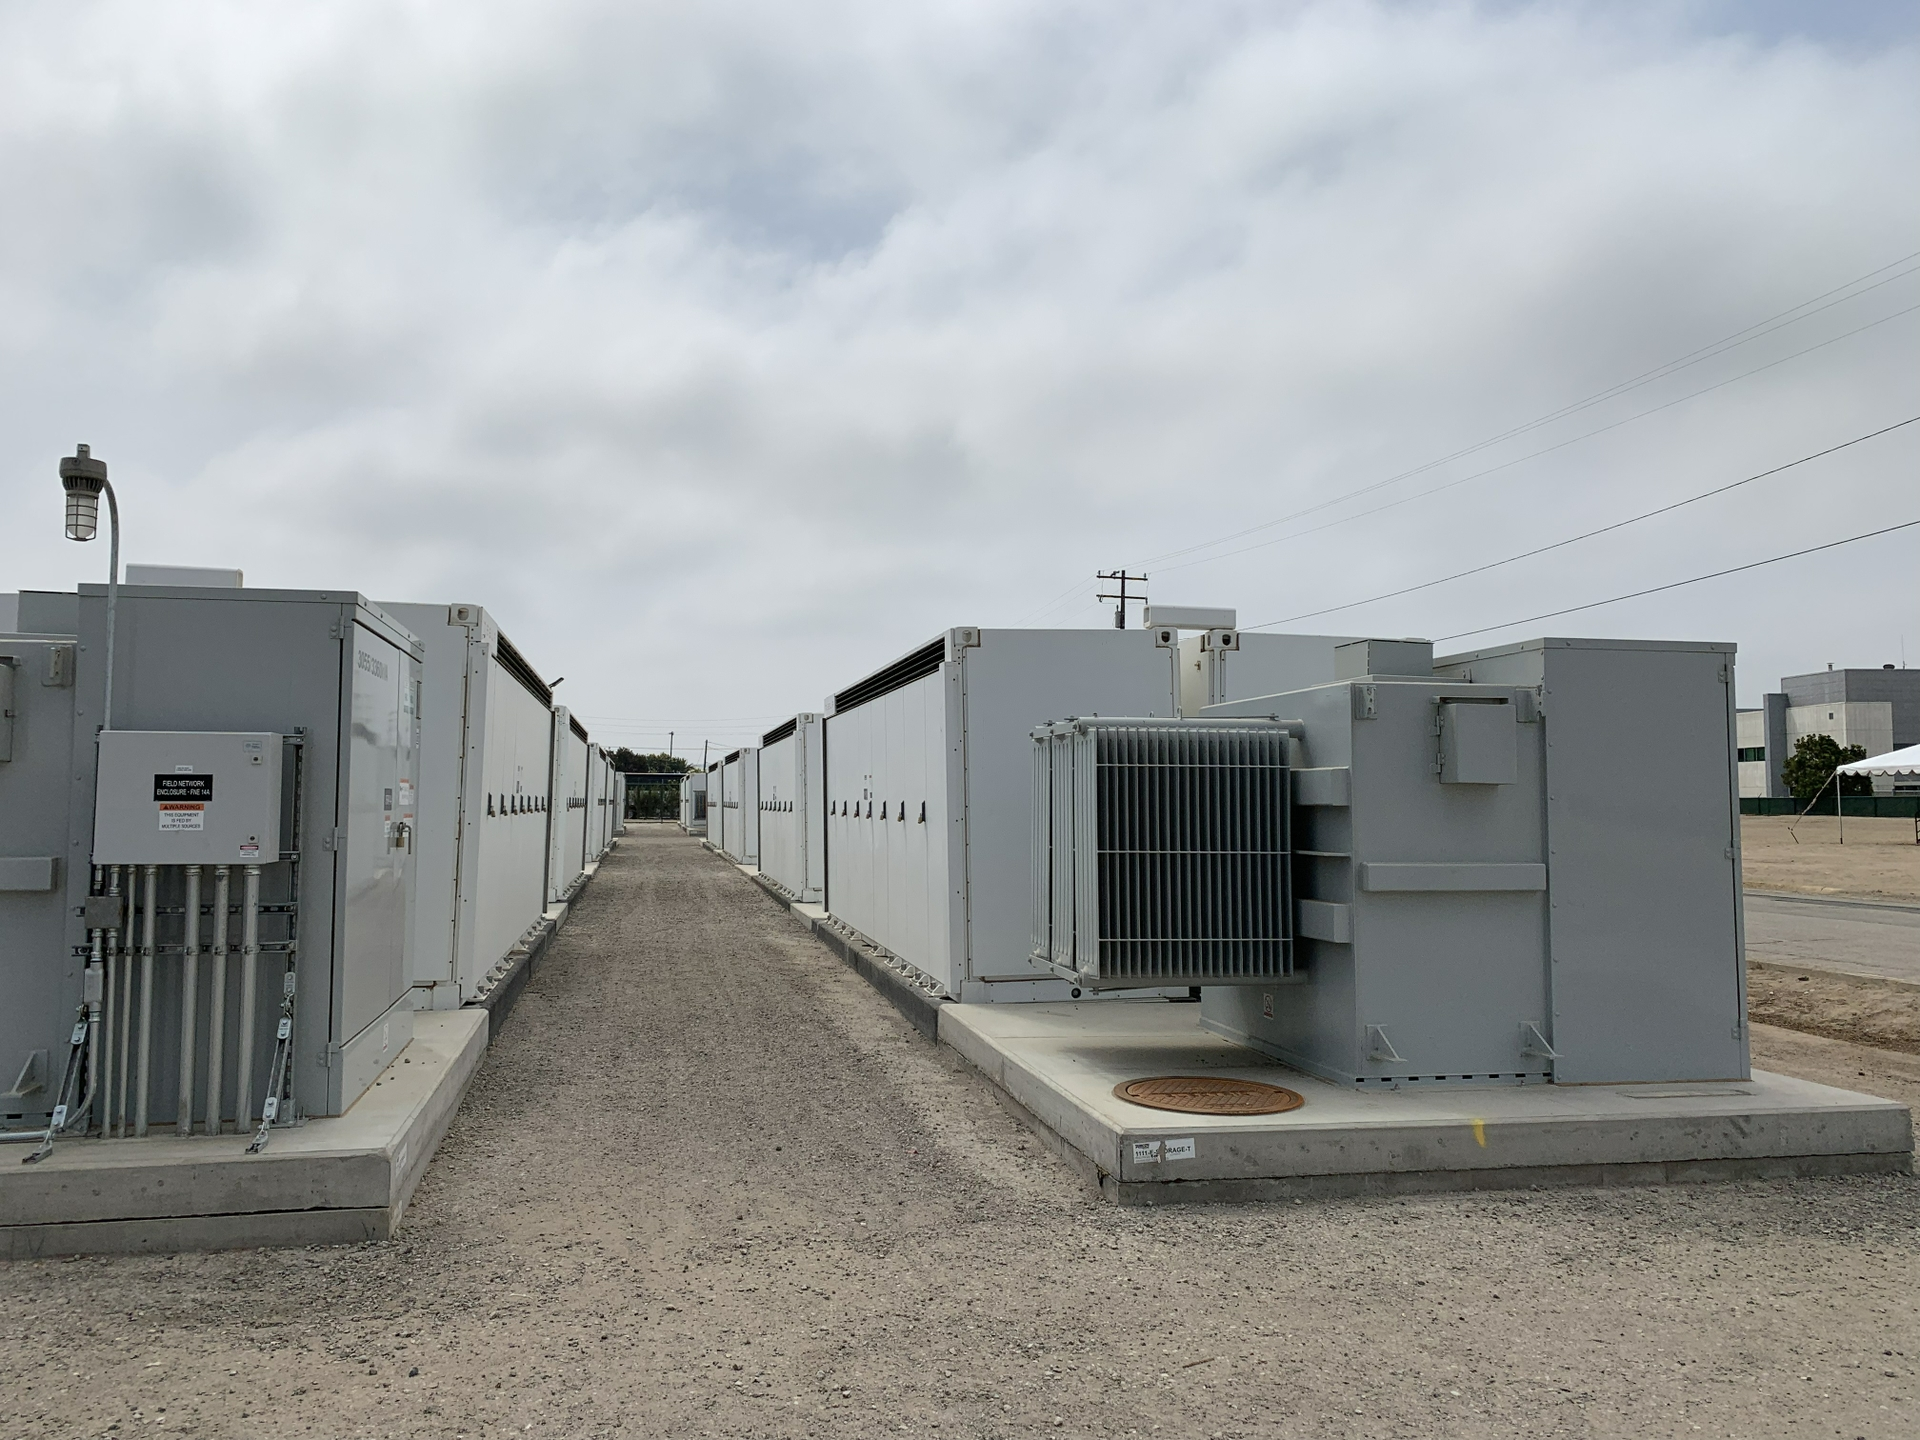 New testing protocol was developed to ensure the innovative new technology would integrate seamlessly into SCE's existing grid infrastructure.